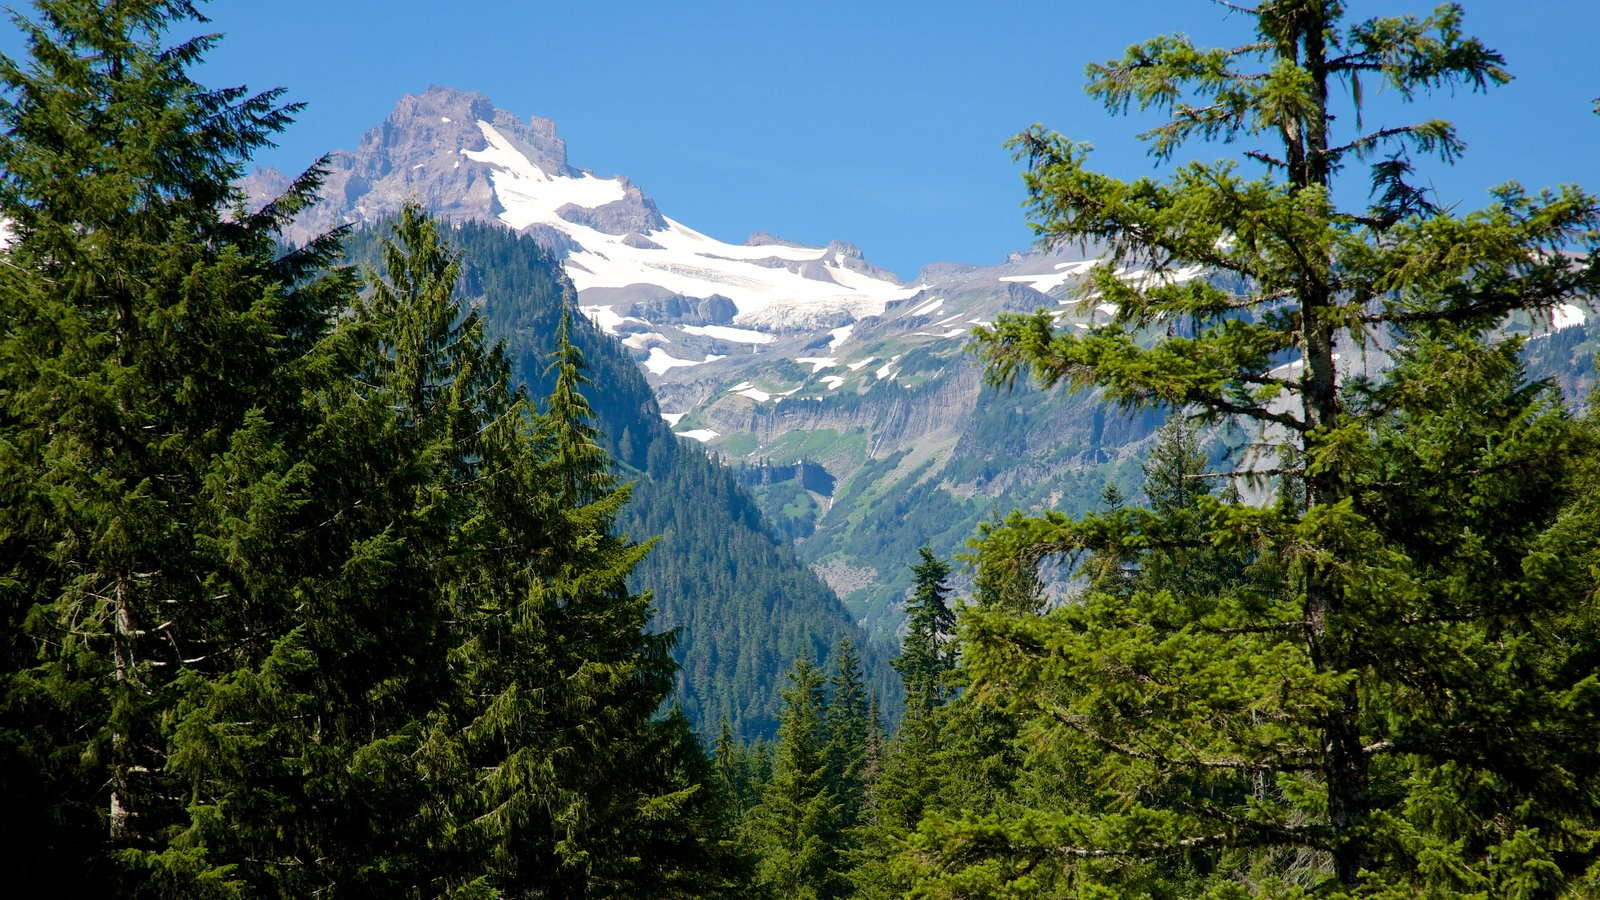 Mount Rainier National Park featuring forests, mountains and landscape views